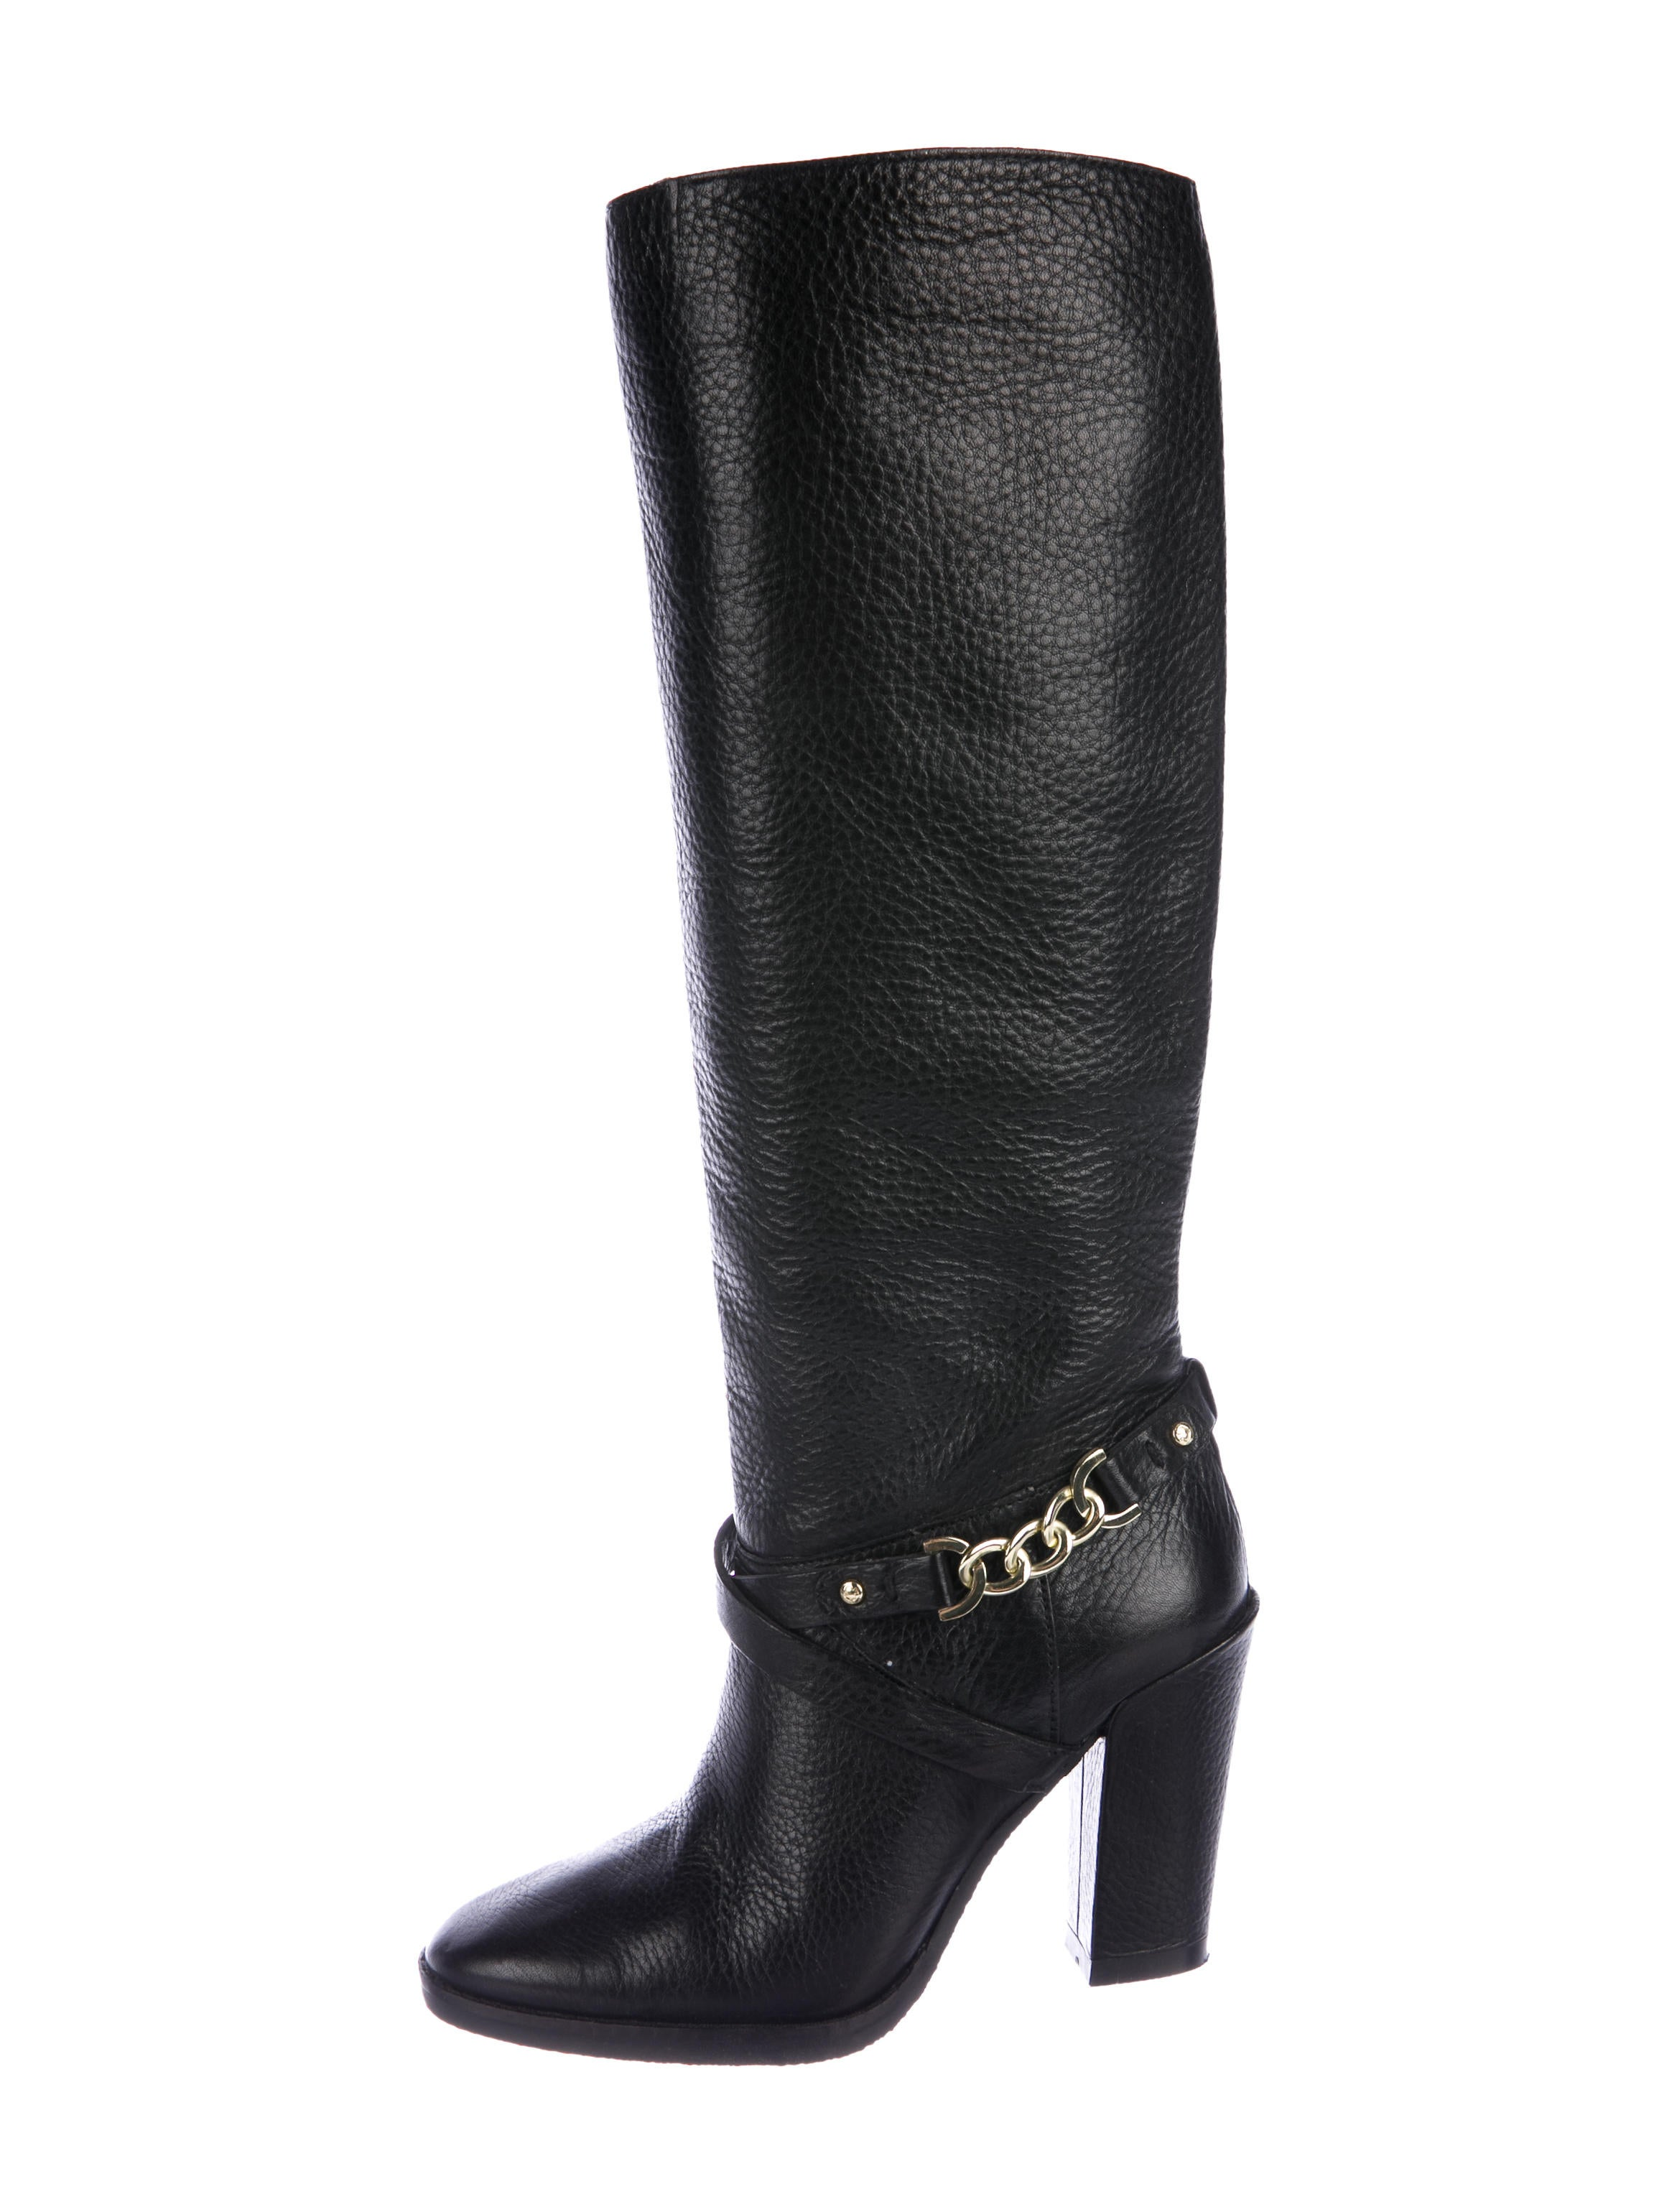 ... Kate Spade New York Montreal Leather Knee-High Boots. Montreal Leather  Knee-High Boots